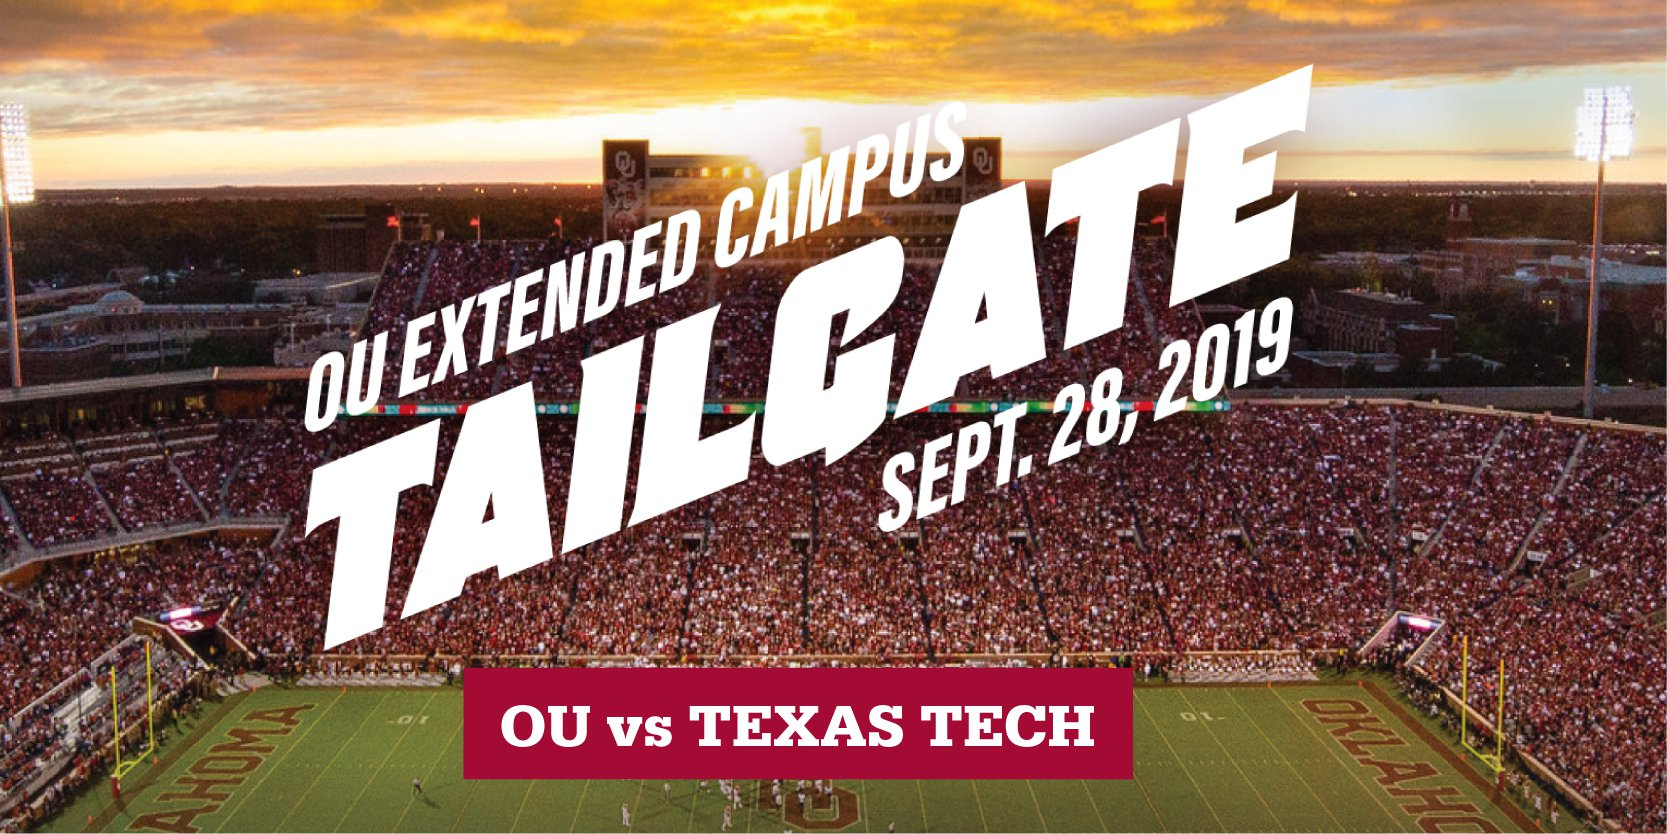 OU Extended Campus Tailgate, September 28, 2019; OU vs Texas Tech